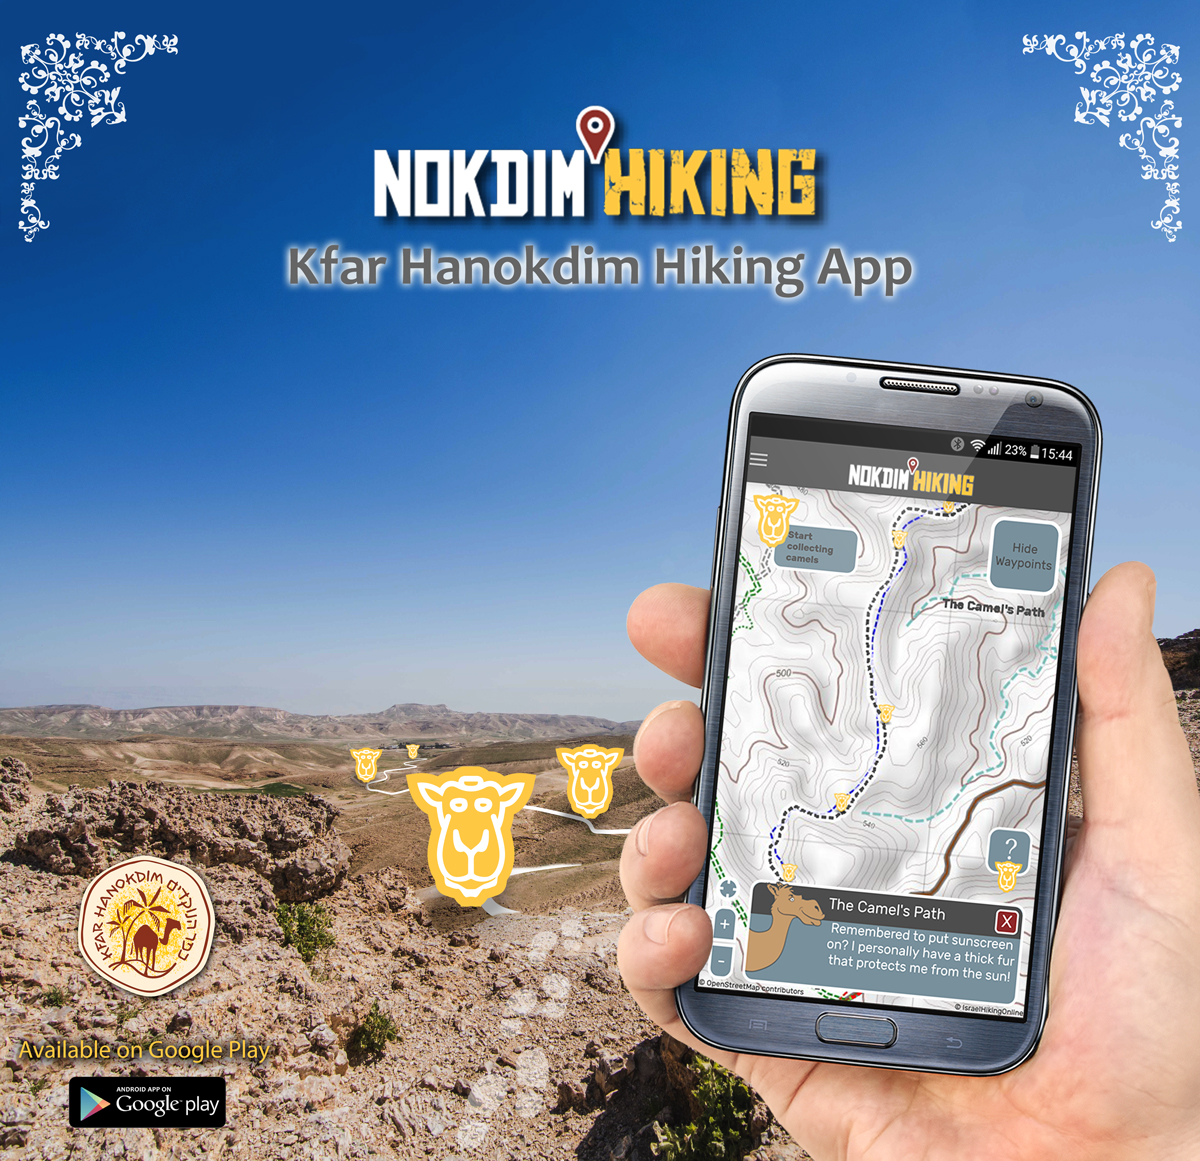 Nokdim Hiking app